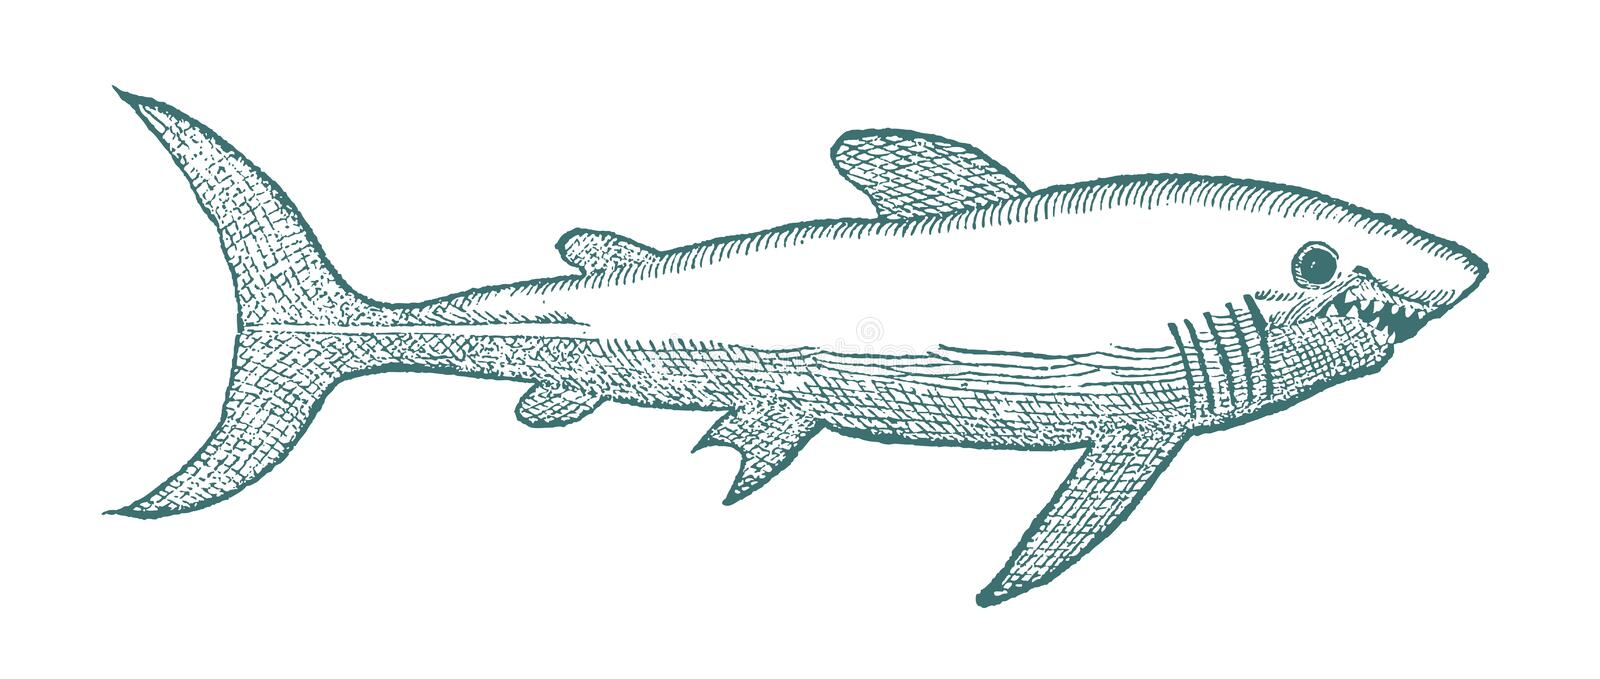 Shark with open mouth. Illustration. Shark with open mouth in profile view. Illustration after a historical or vintage woodcut from the 16th century stock illustration